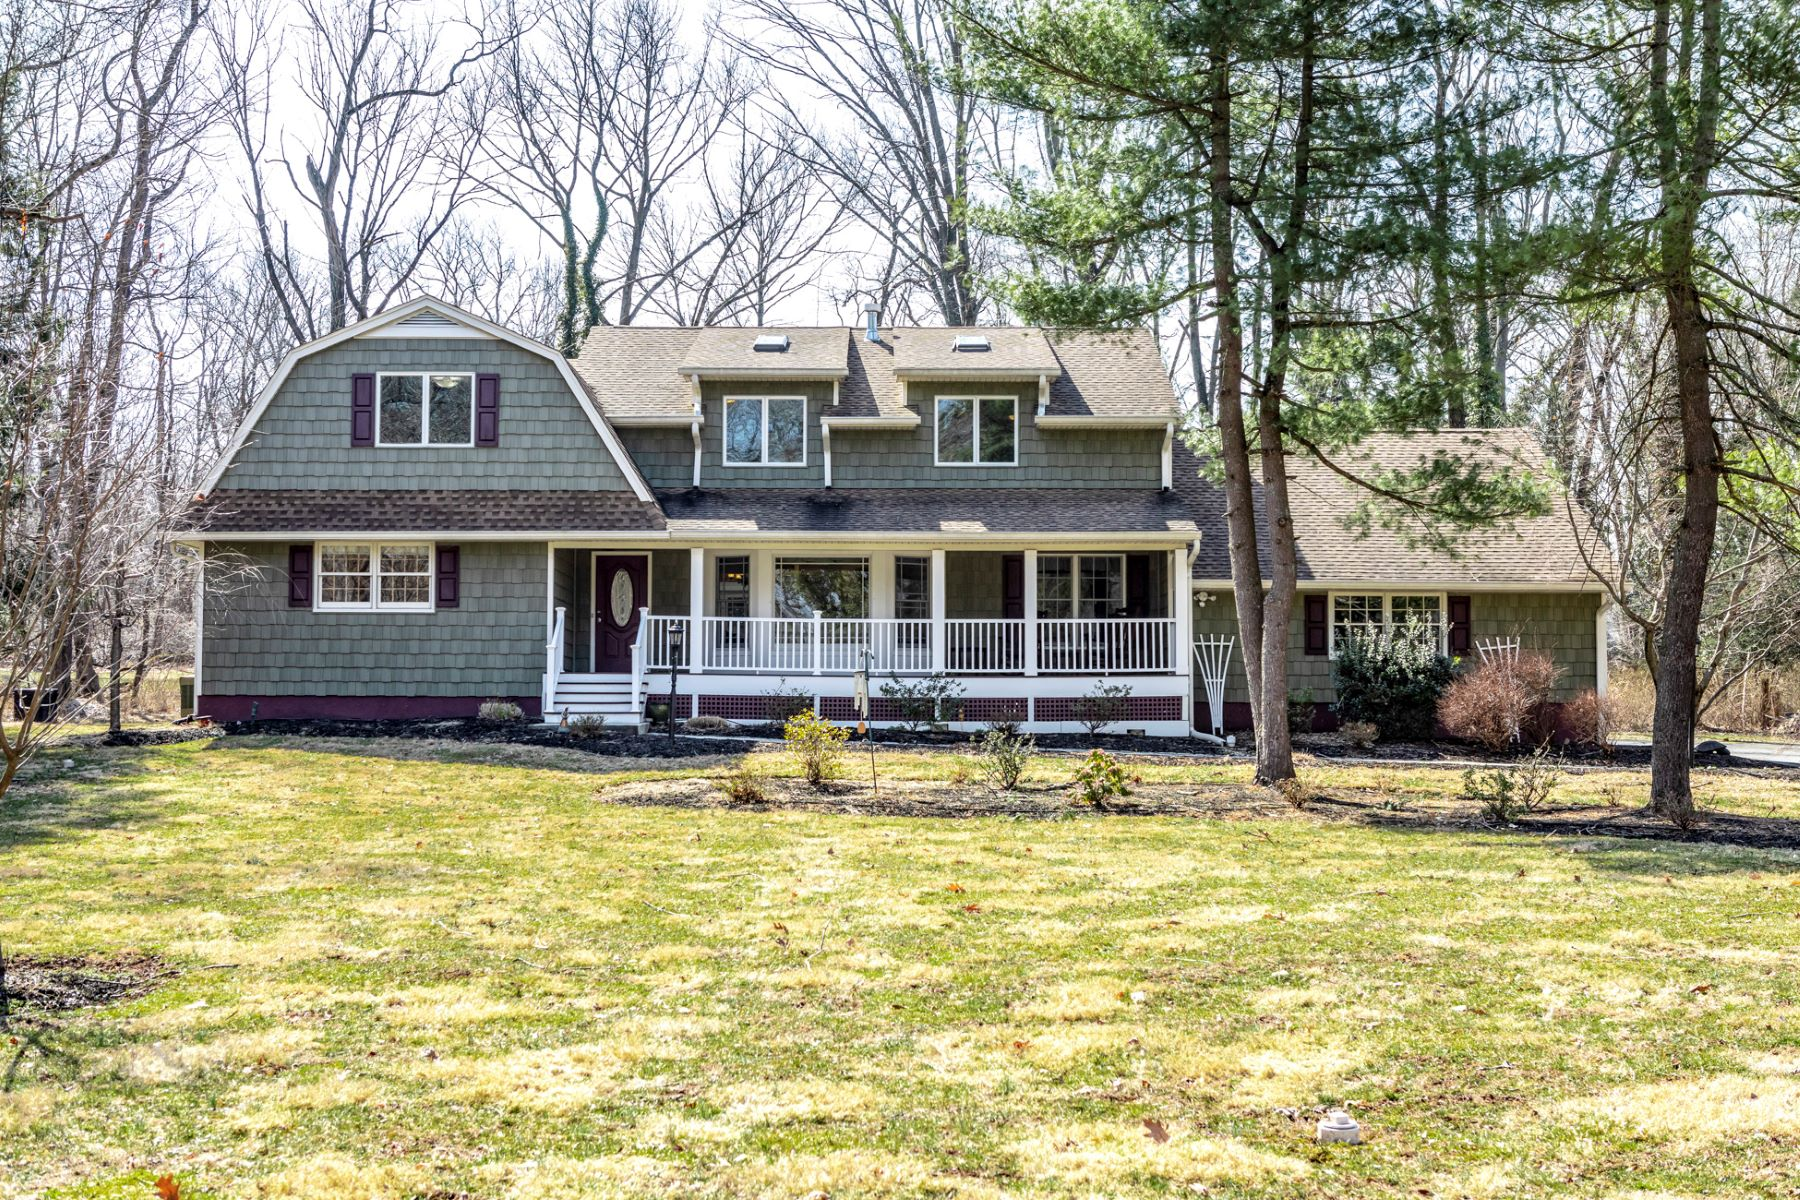 Property for Sale at A Fresh Look 33 Sycamore Lane, Skillman, New Jersey 08558 United States